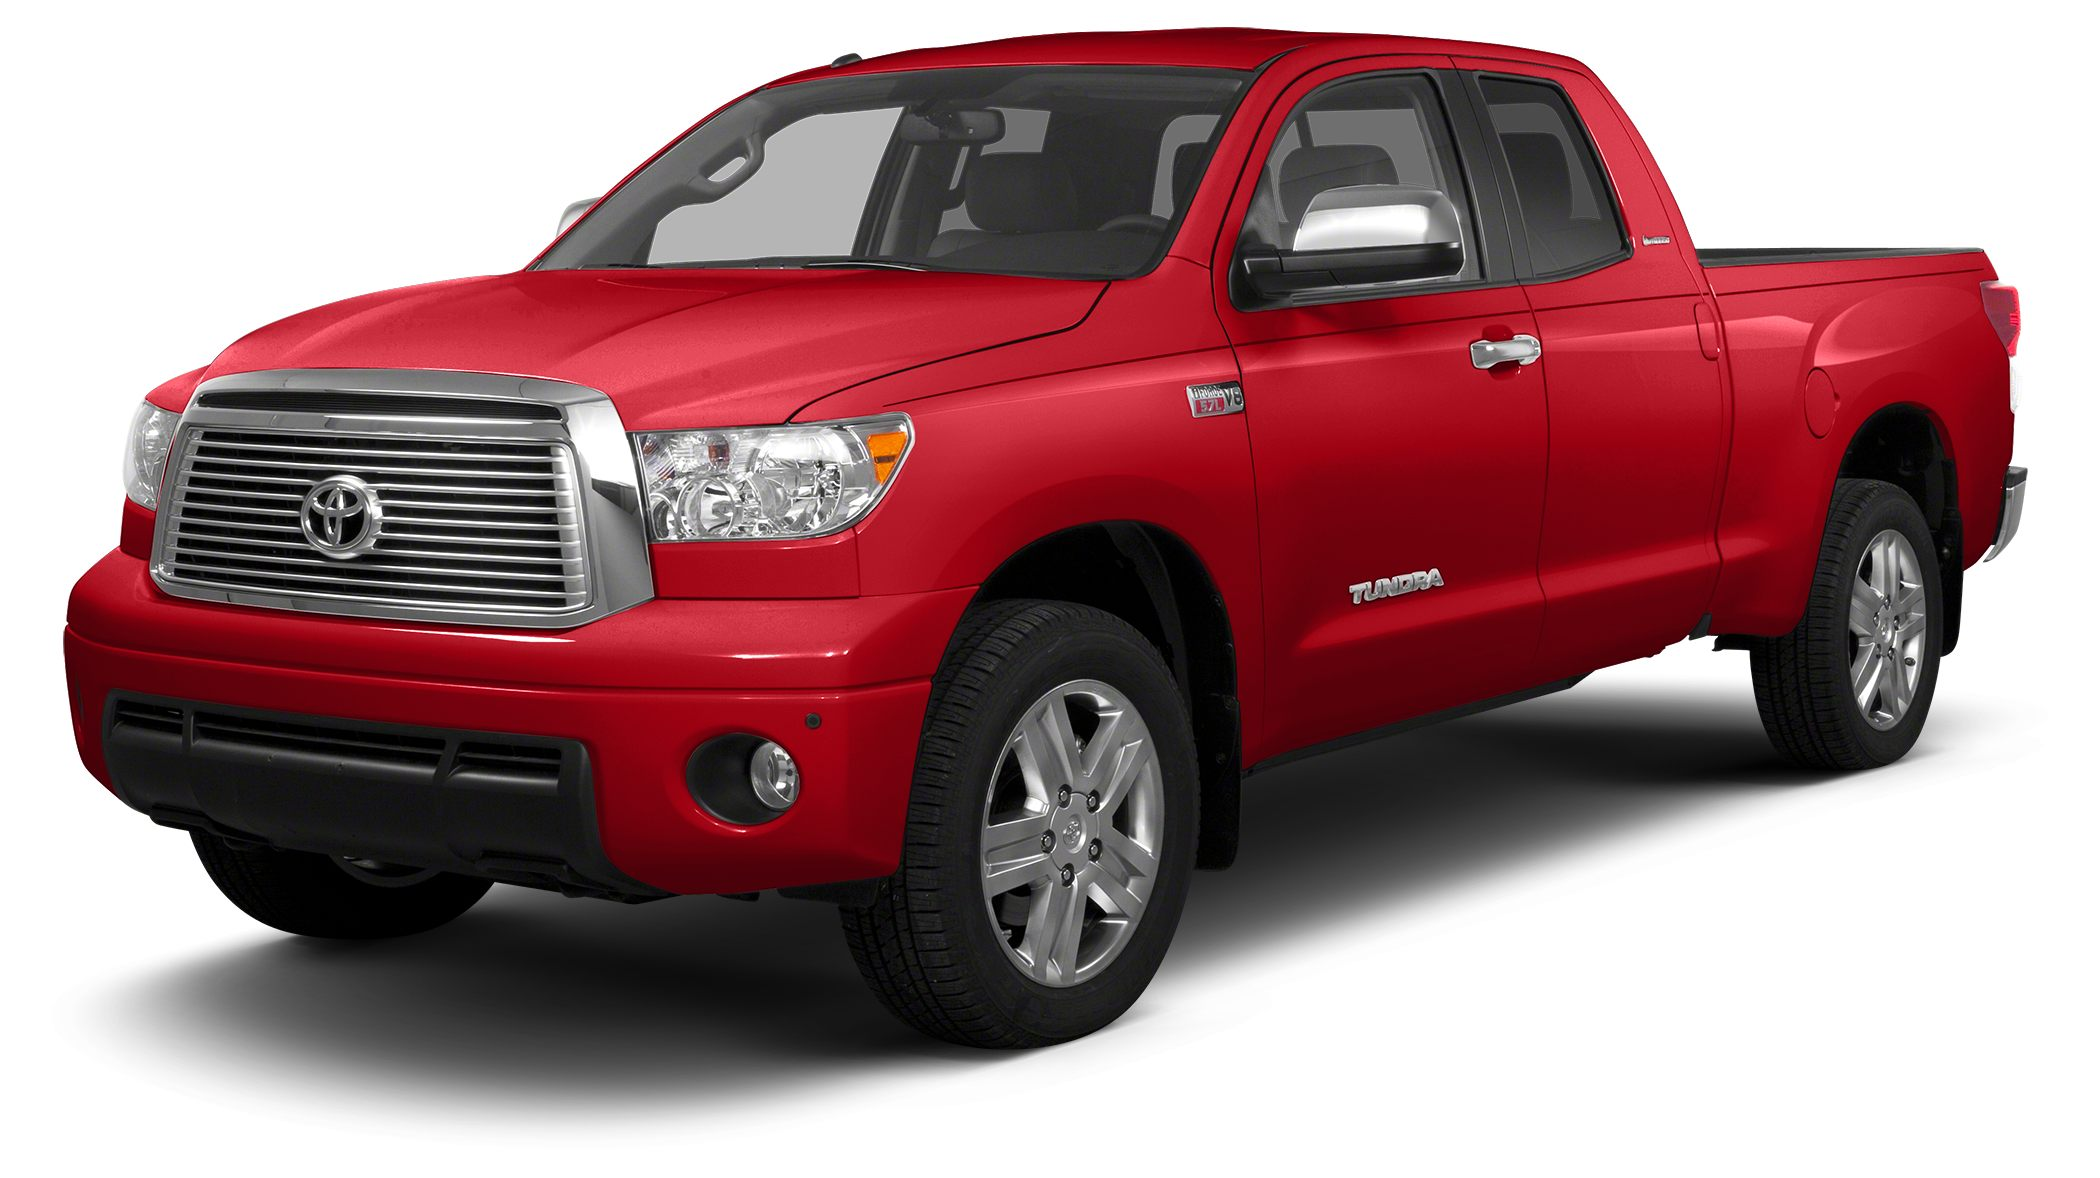 2013 Toyota Tundra Grade Thank you for taking the time to look at this rock solid 2013 Toyota Tund